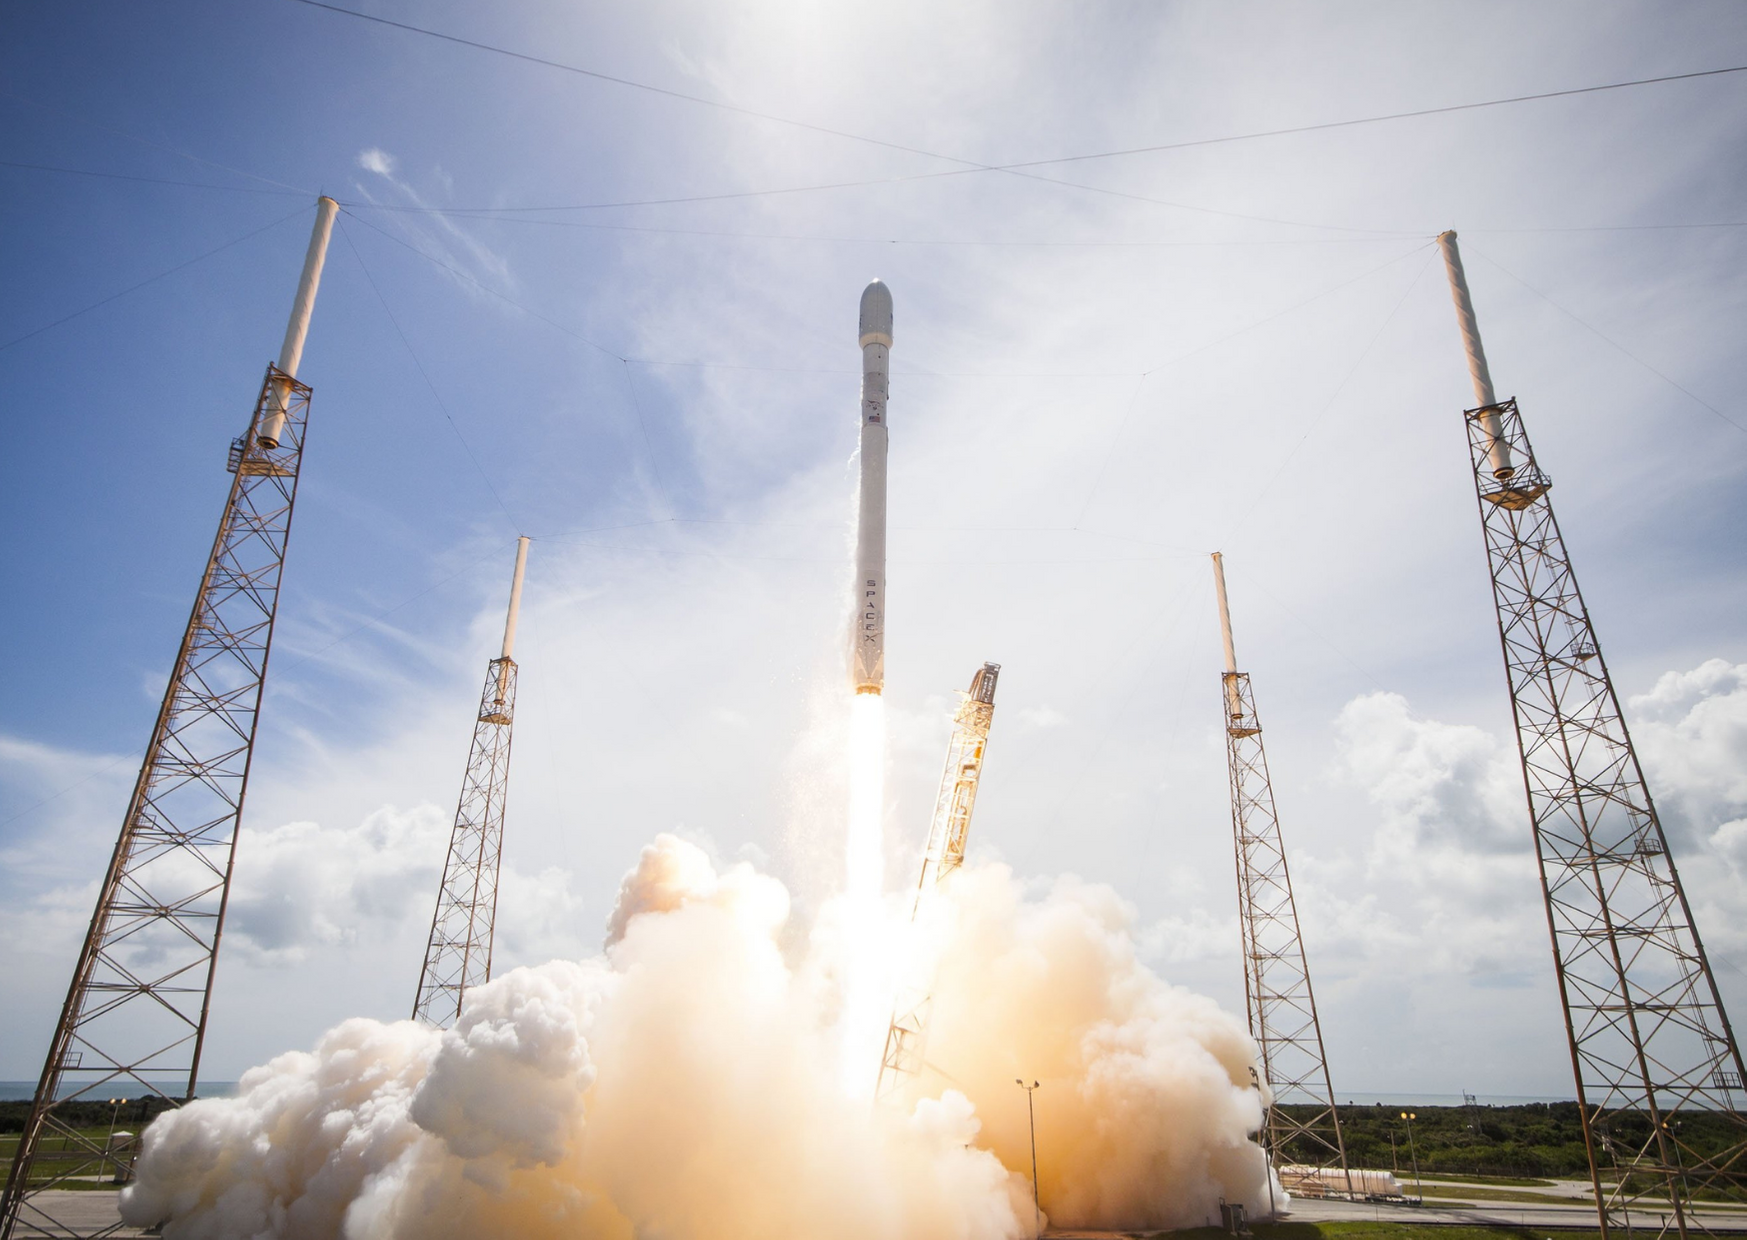 SpaceX rocket launching into bright blue sky with large cloud trailing behind